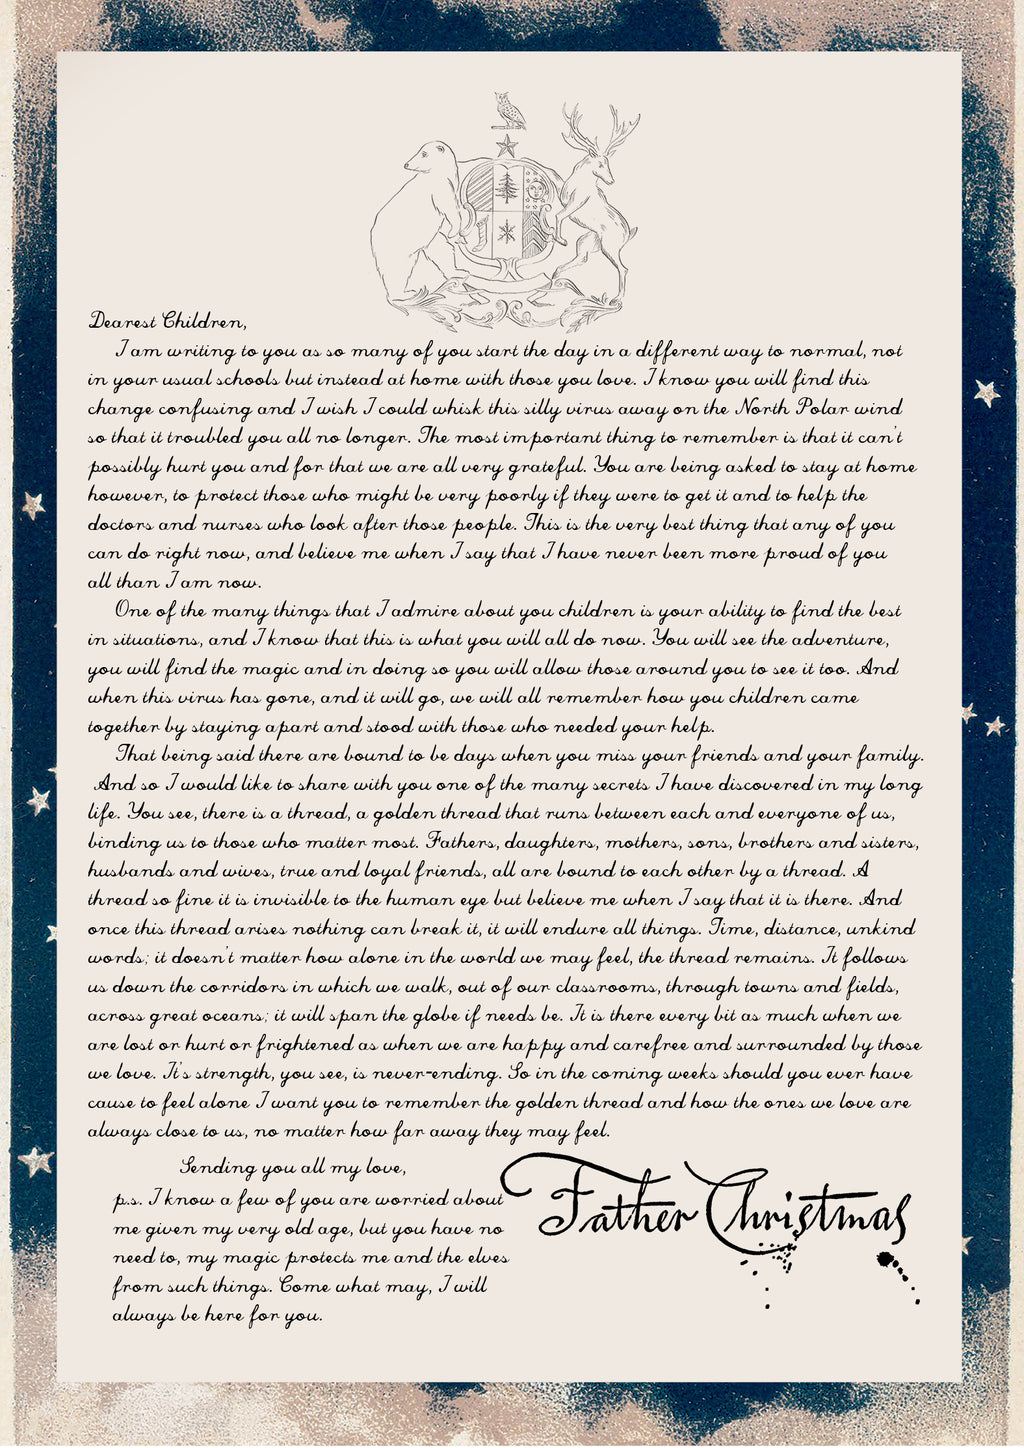 The Golden Thread Letter from Father Christmas